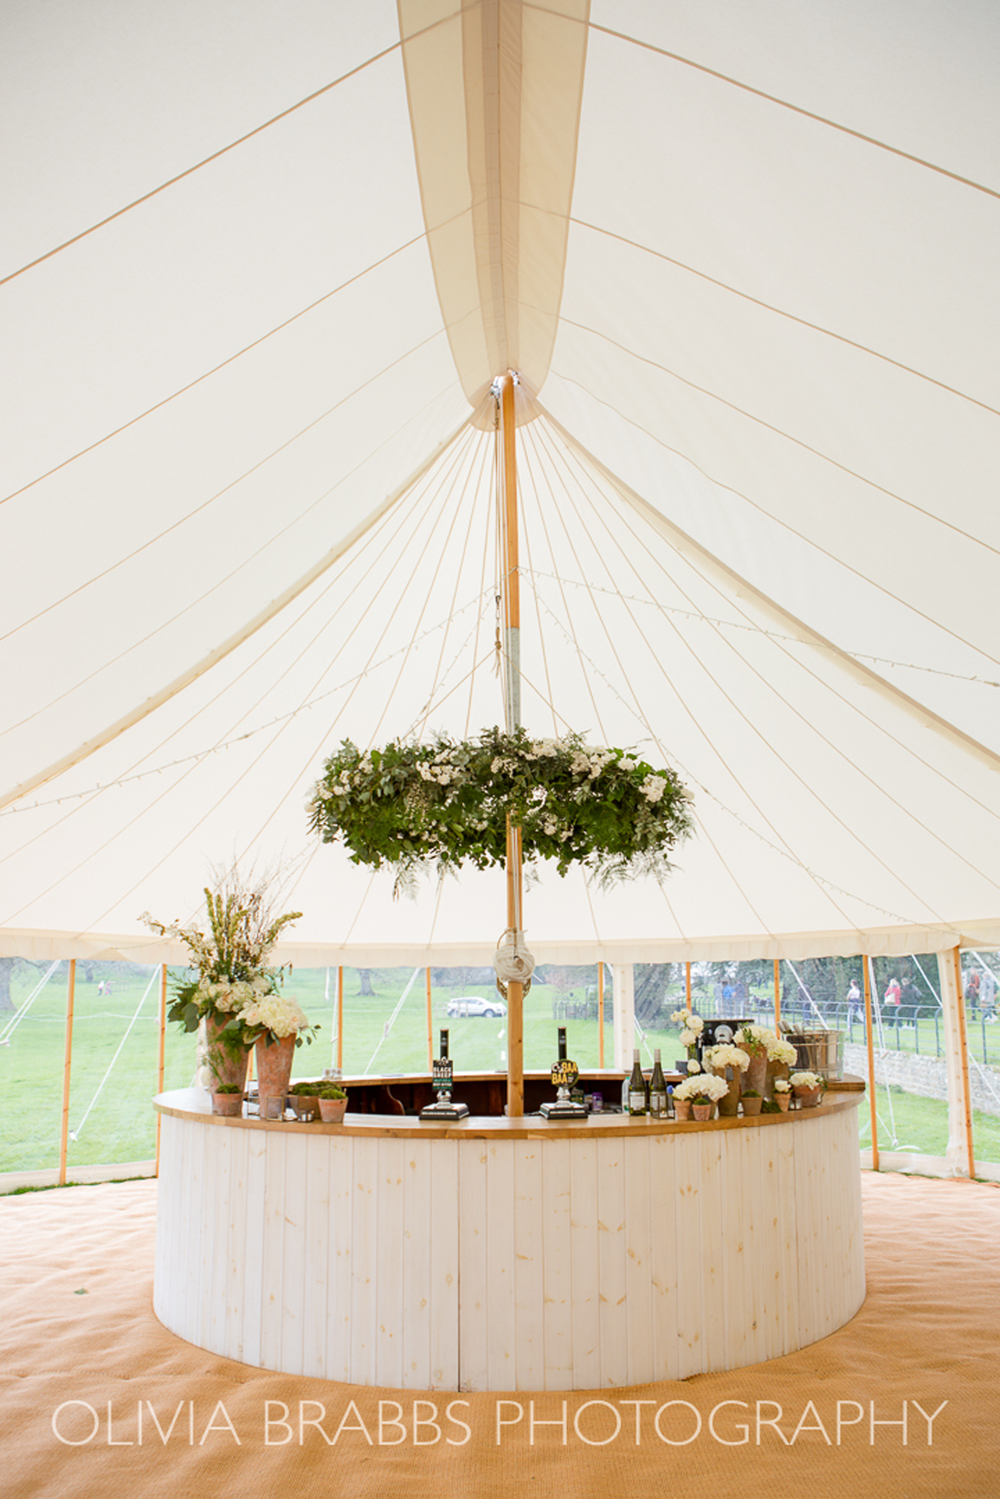 Circular Bar & Decorative Foliage